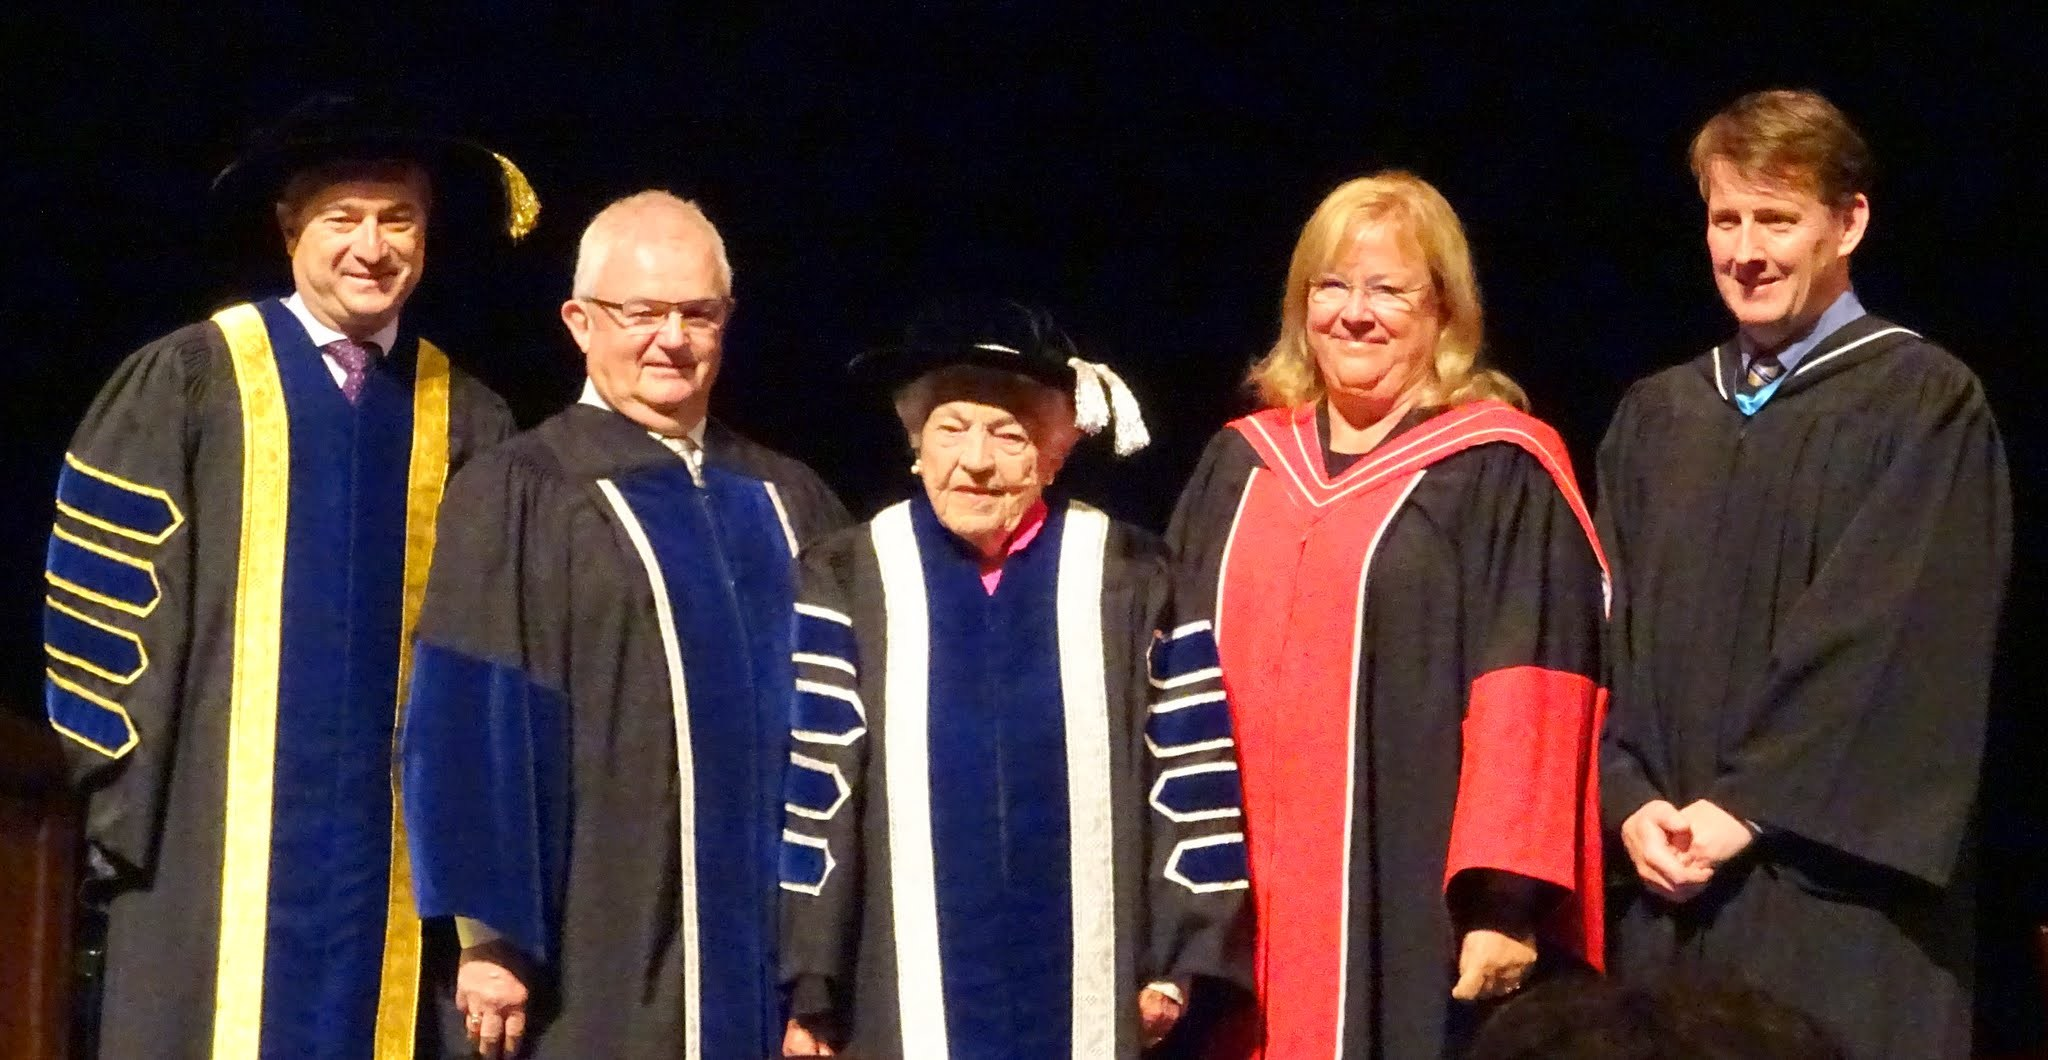 Dr. Jeff Zabudsky, Bryan Dawson, Chancellor Hazel McCallion, Dr. Mary Preece, Jamie King